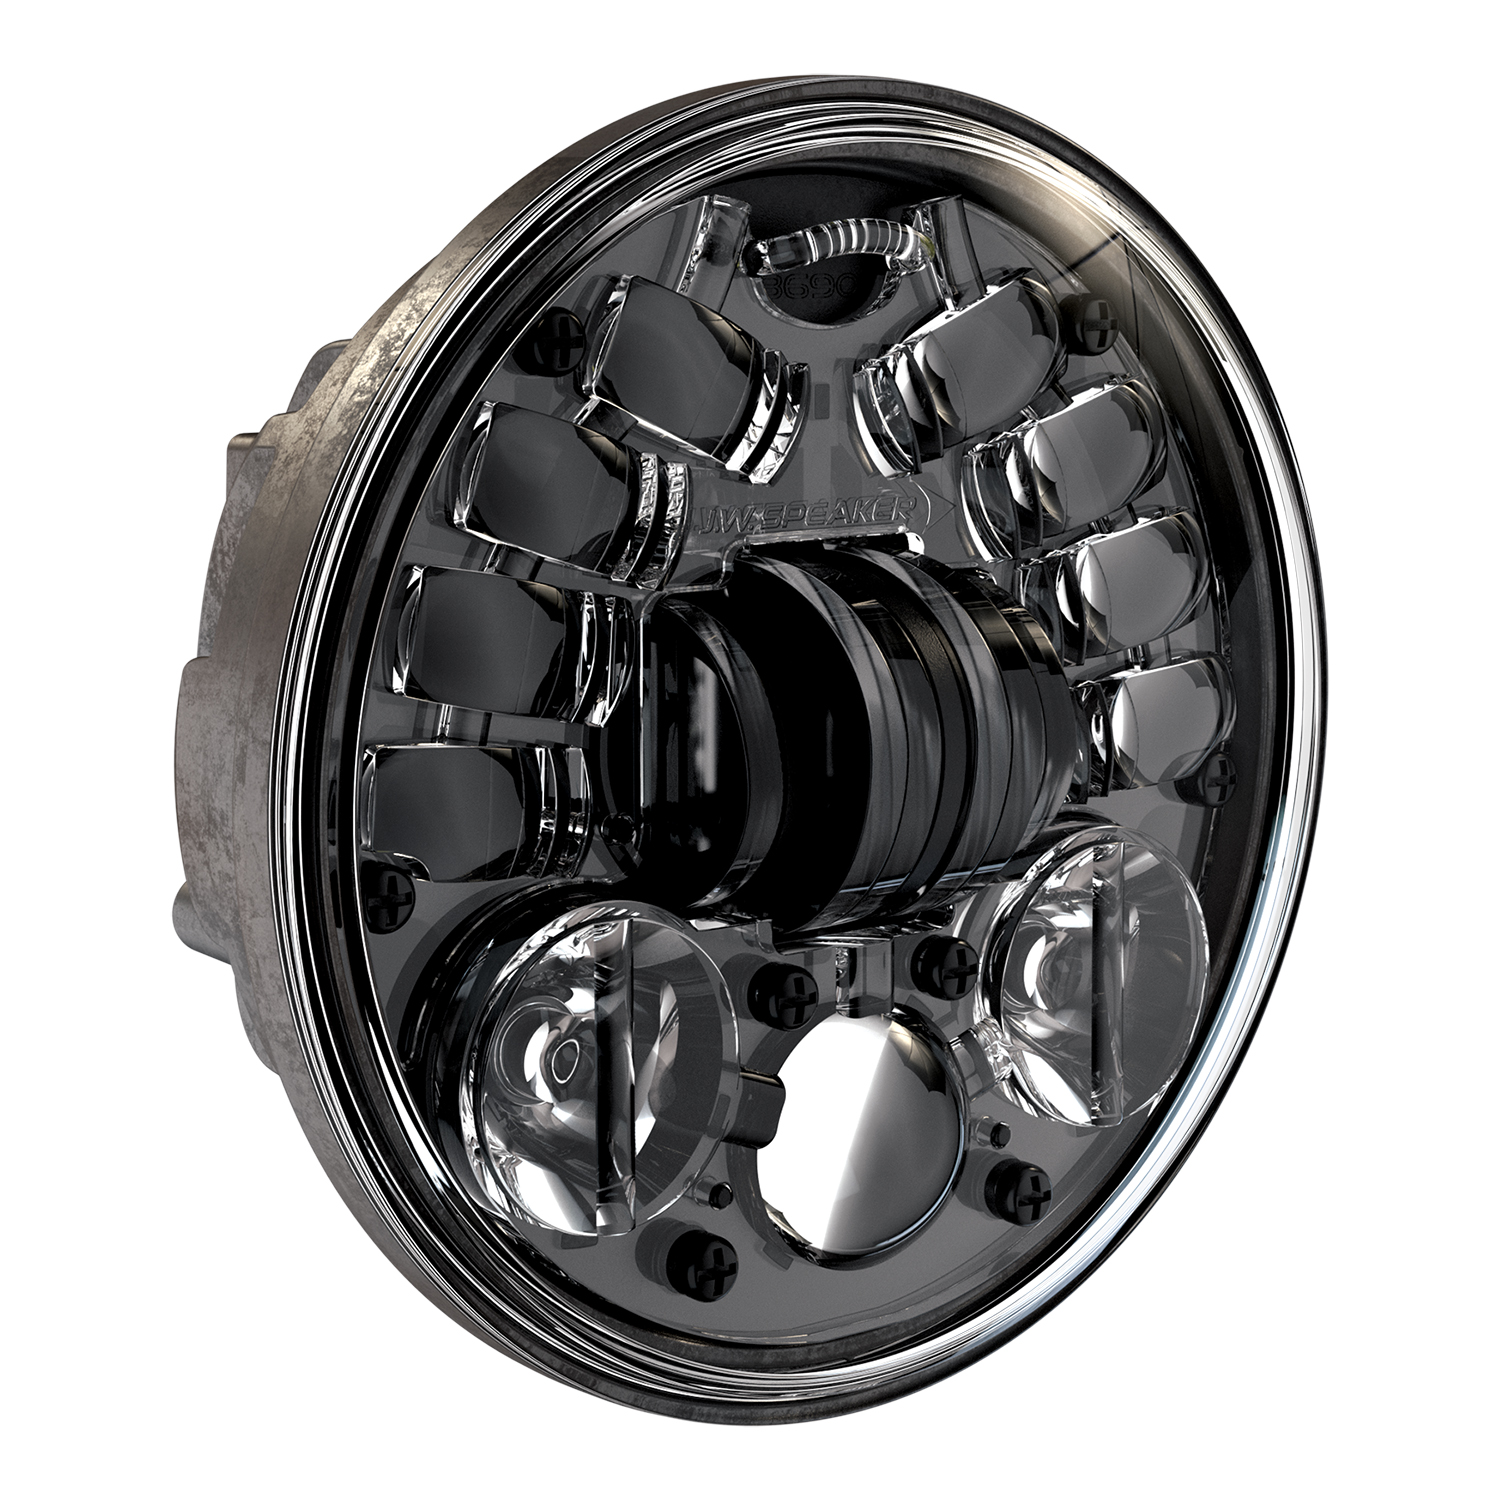 LED Motorcycle Headlight Model 8690 Adaptive 2 with Black Bezel, 3/4 View